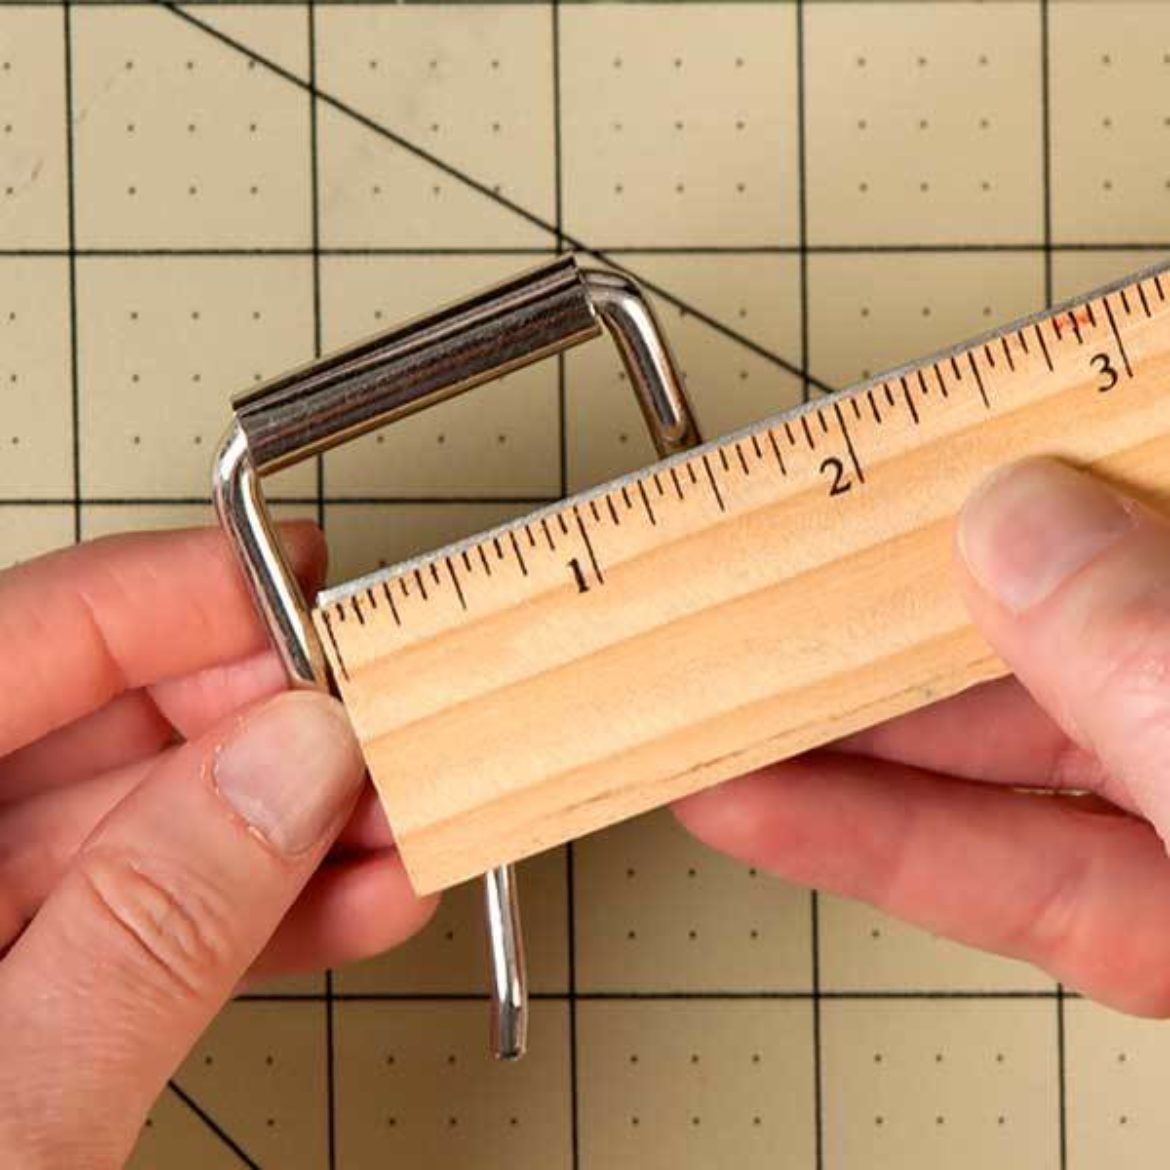 Buckle being measured to ensure that it is 1.5 inches wide